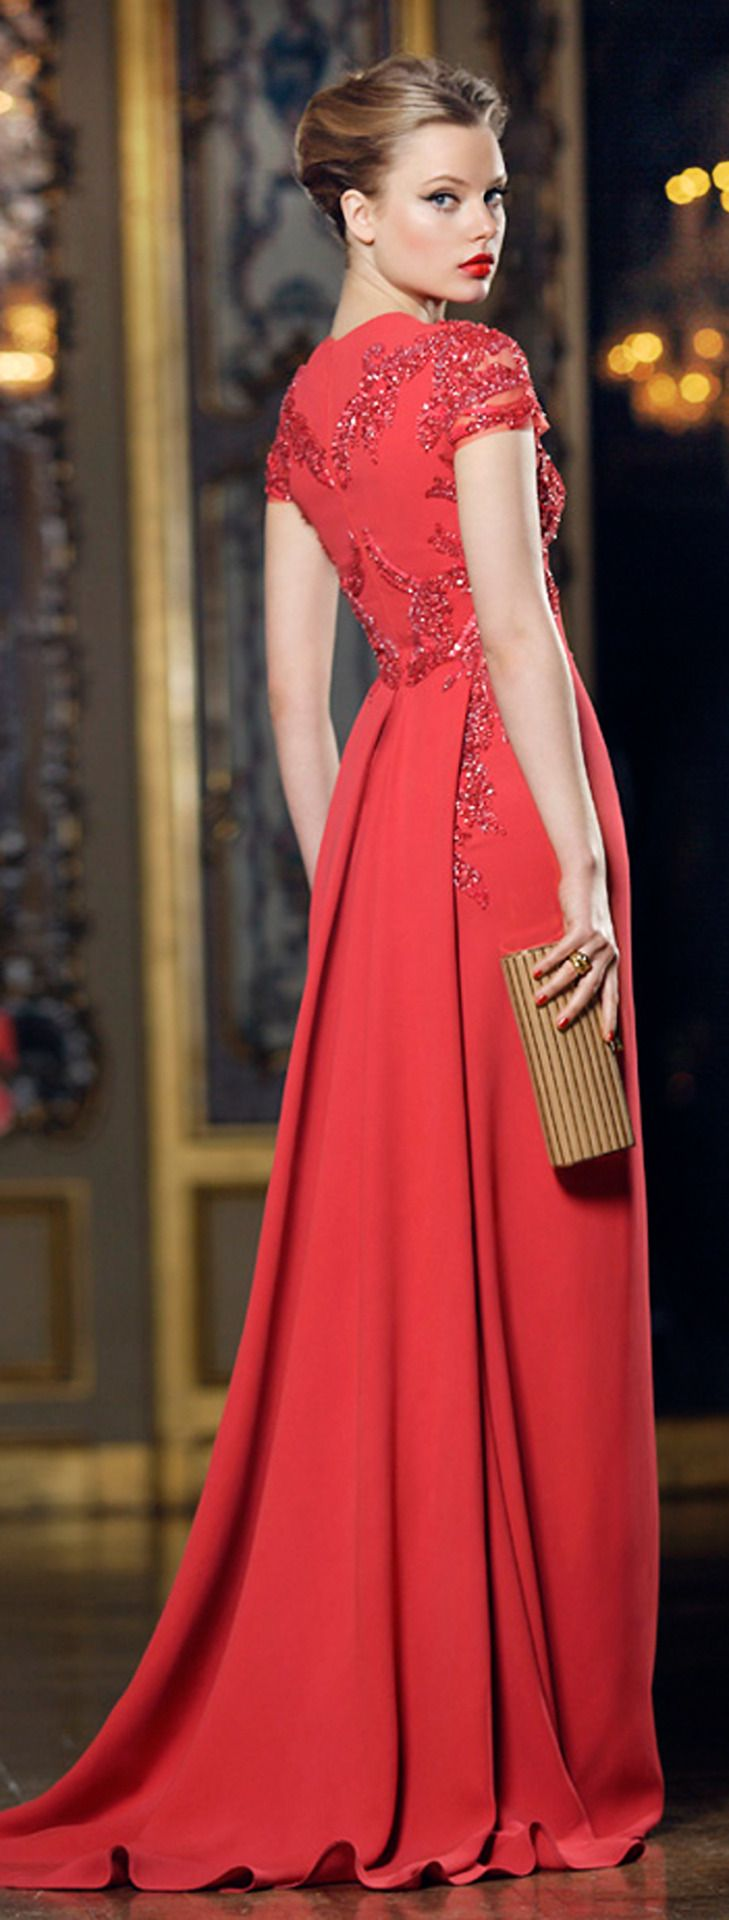 best dress images on pinterest party outfits beautiful